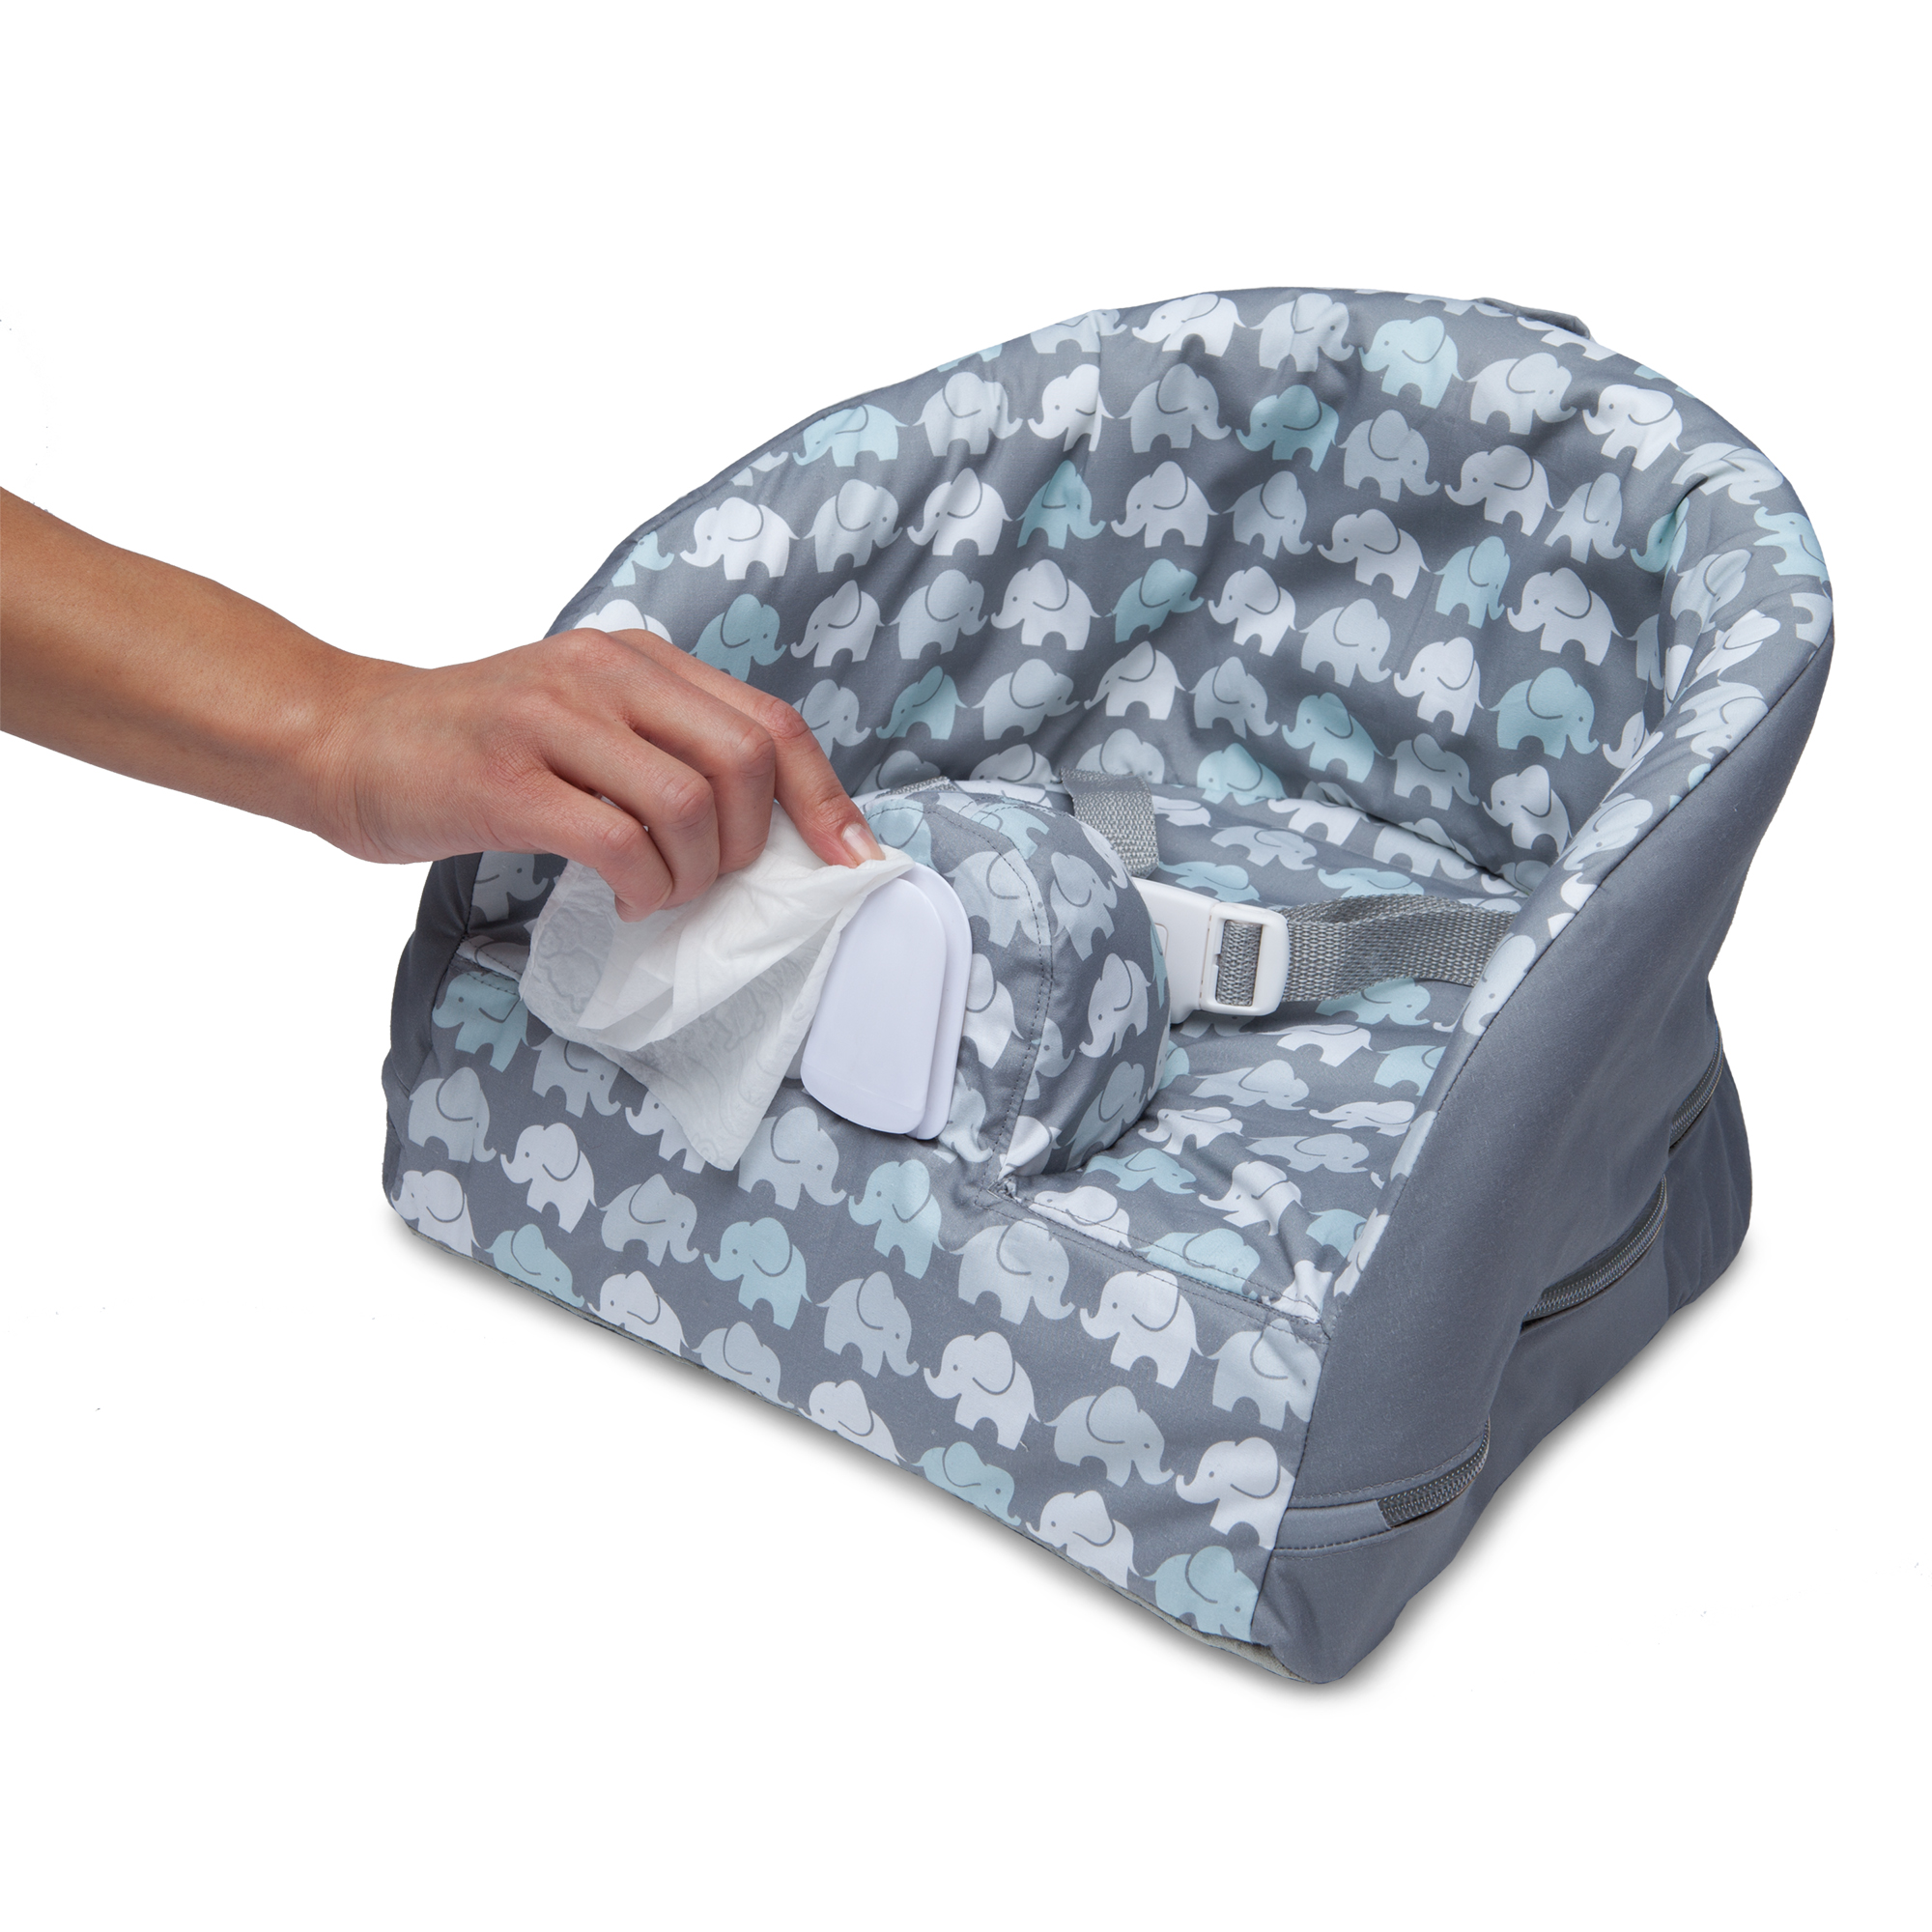 boppy baby chair desk reviews give your the comfort he or she needs with boppyboppychair3